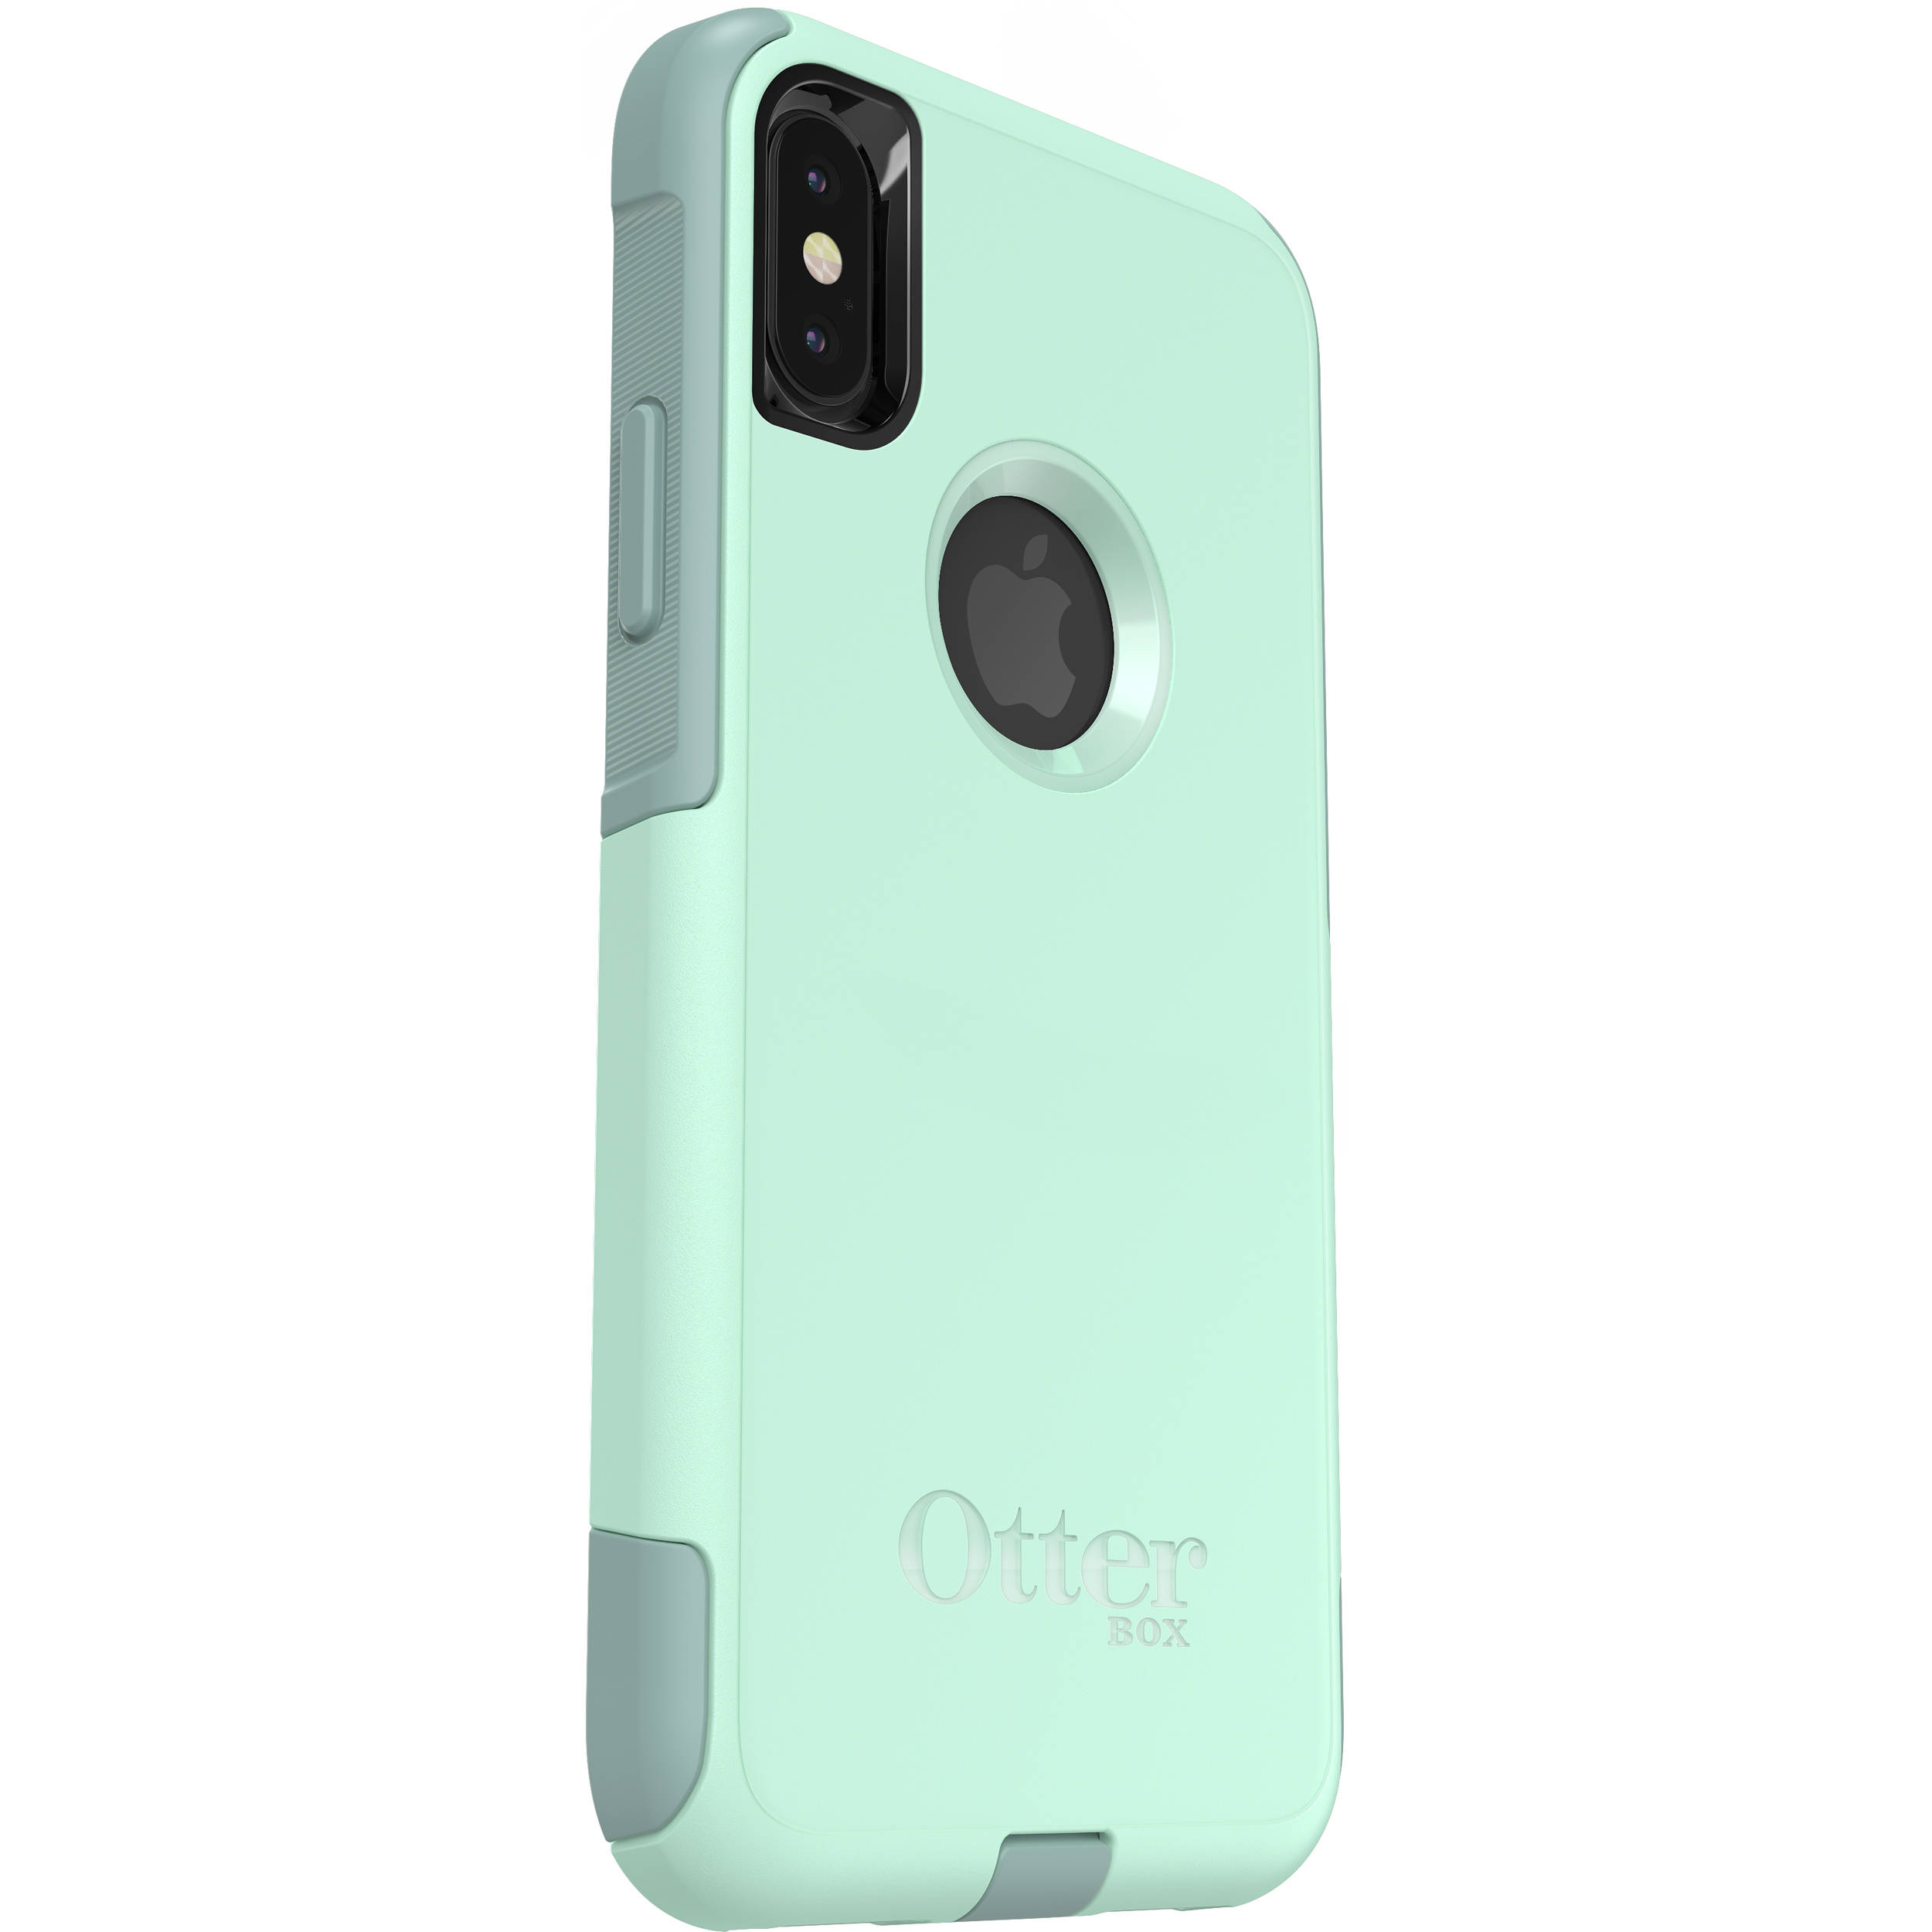 newest 8a3b9 ffb86 OtterBox Commuter Case for iPhone X/Xs (Ocean way)